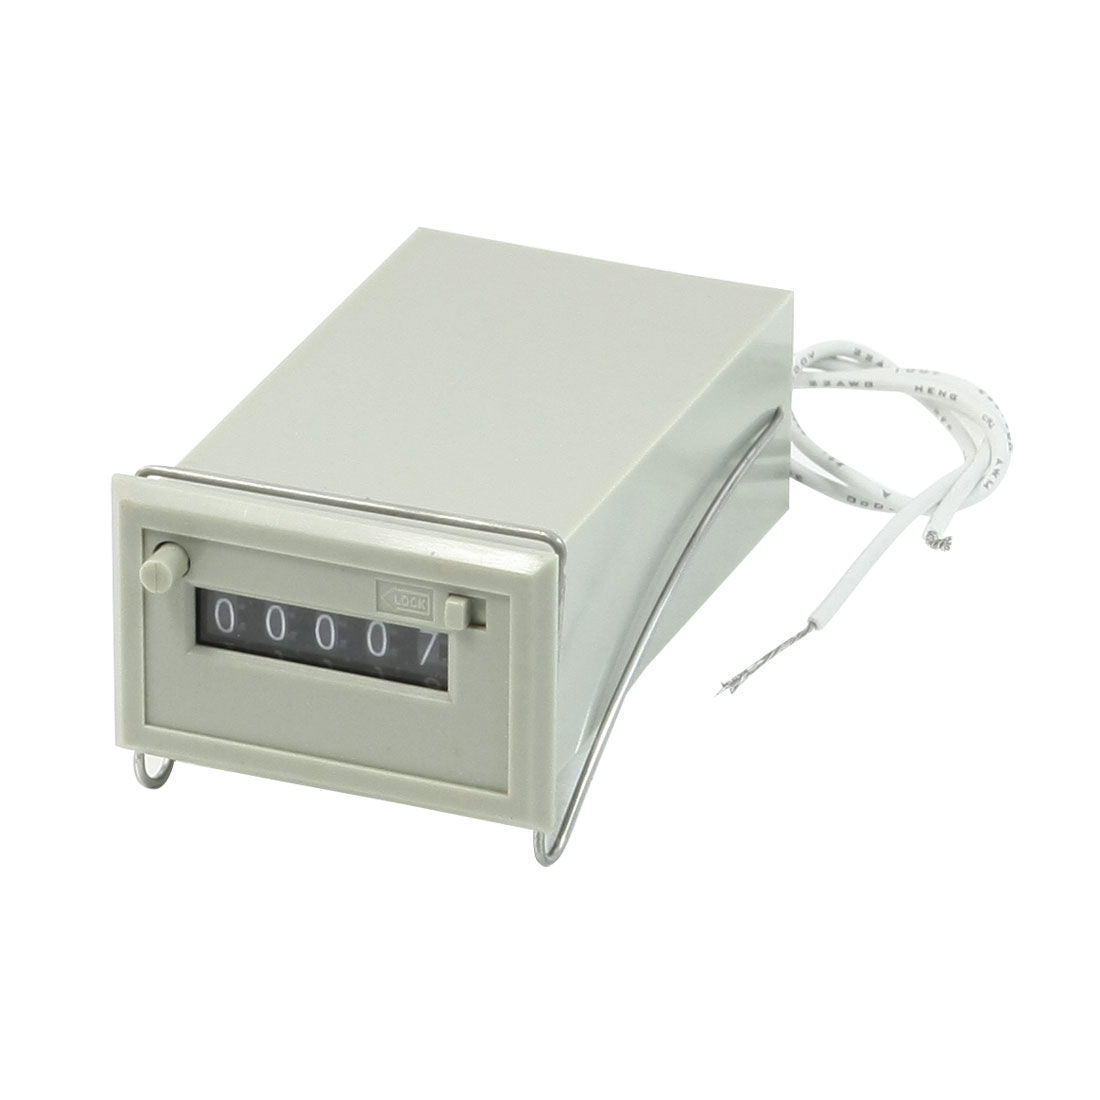 CSK5-DKW AC 220V 5 Digits 2 White Wire Lockable Electronmagnetic Counter